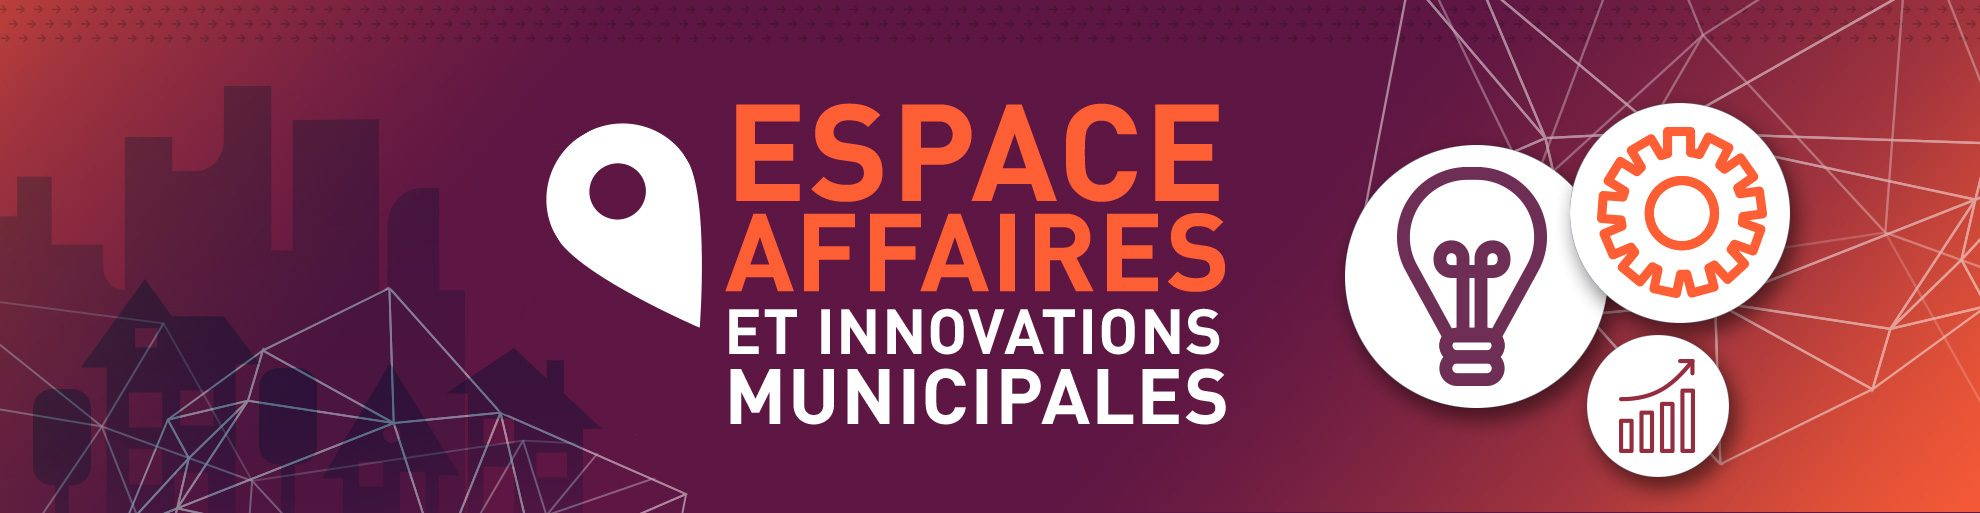 Salon des exposants